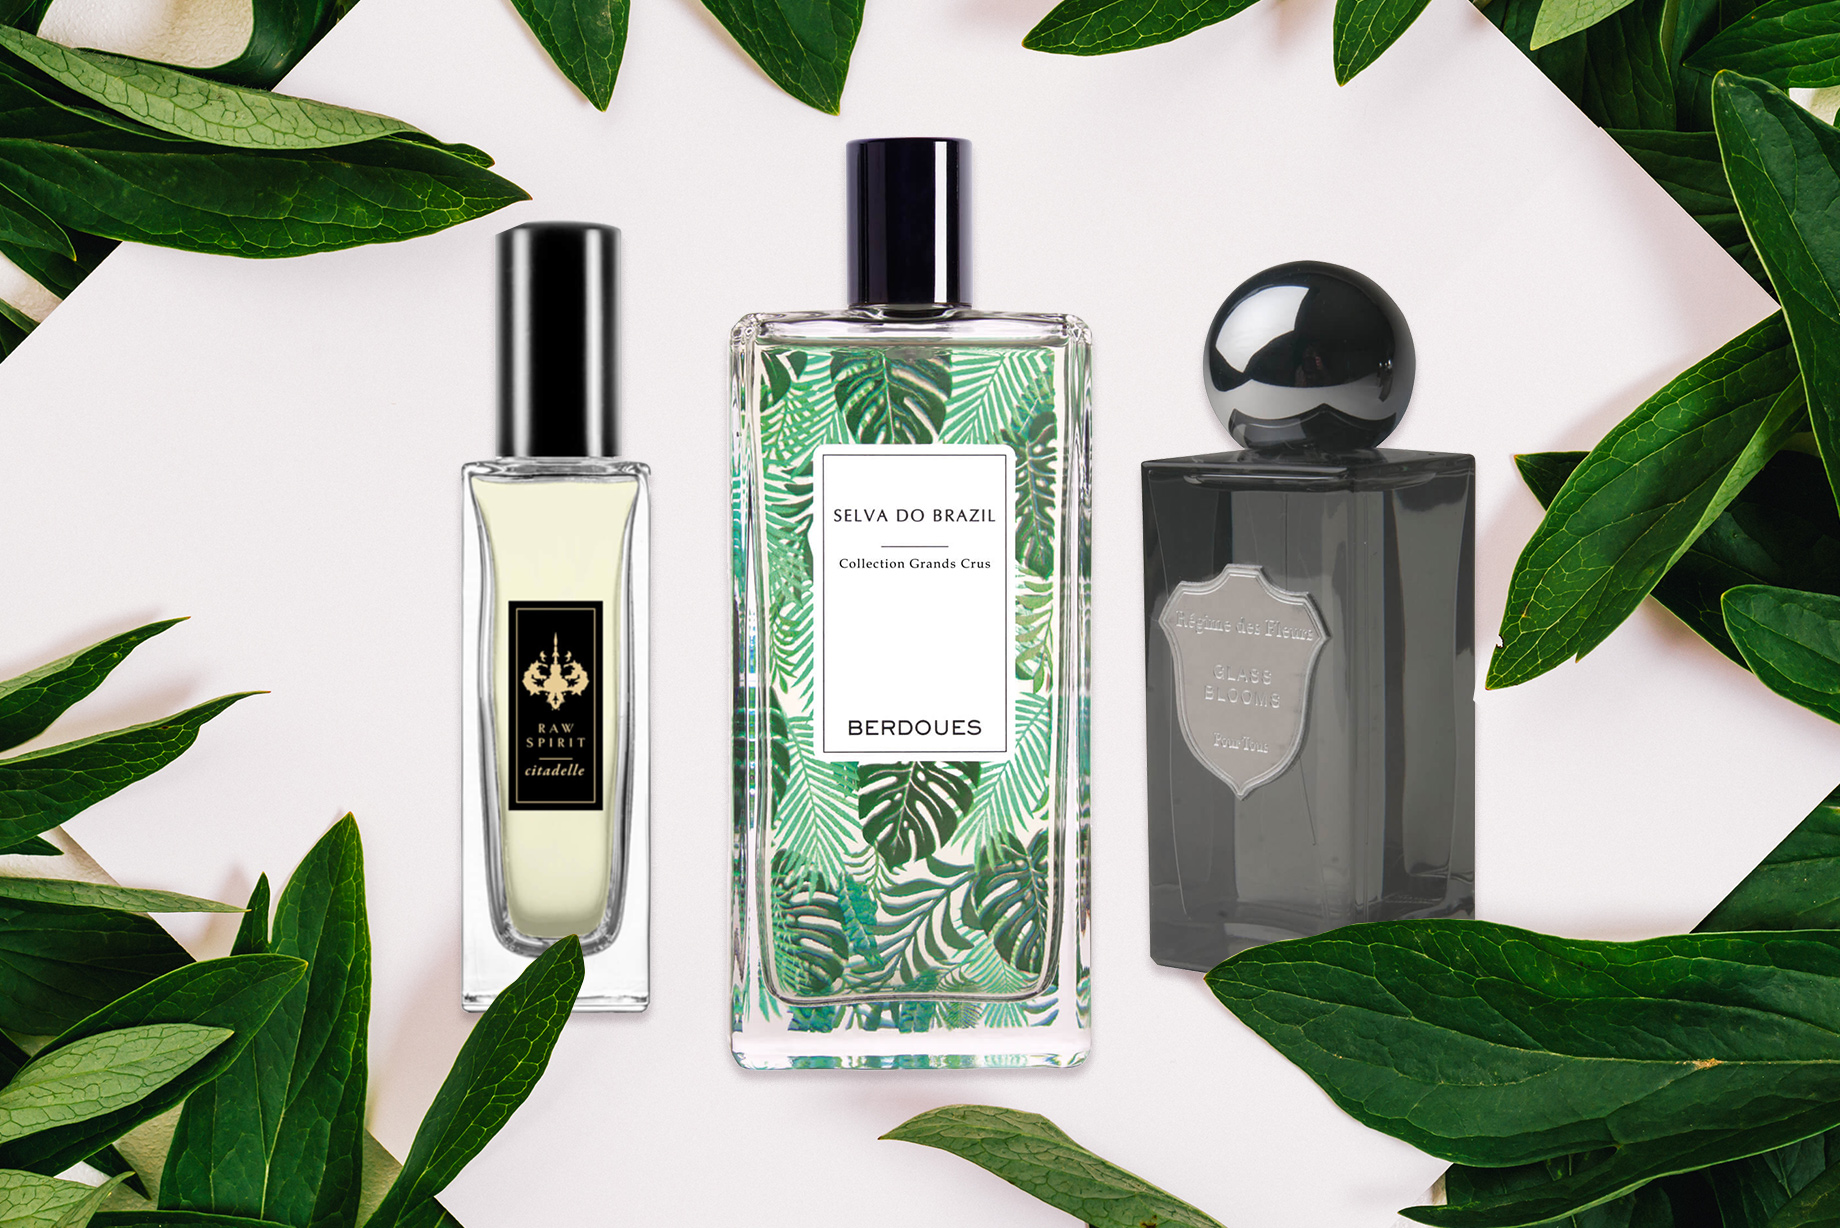 Born Natural: These Fragrance Houses Are All About The Ingredients